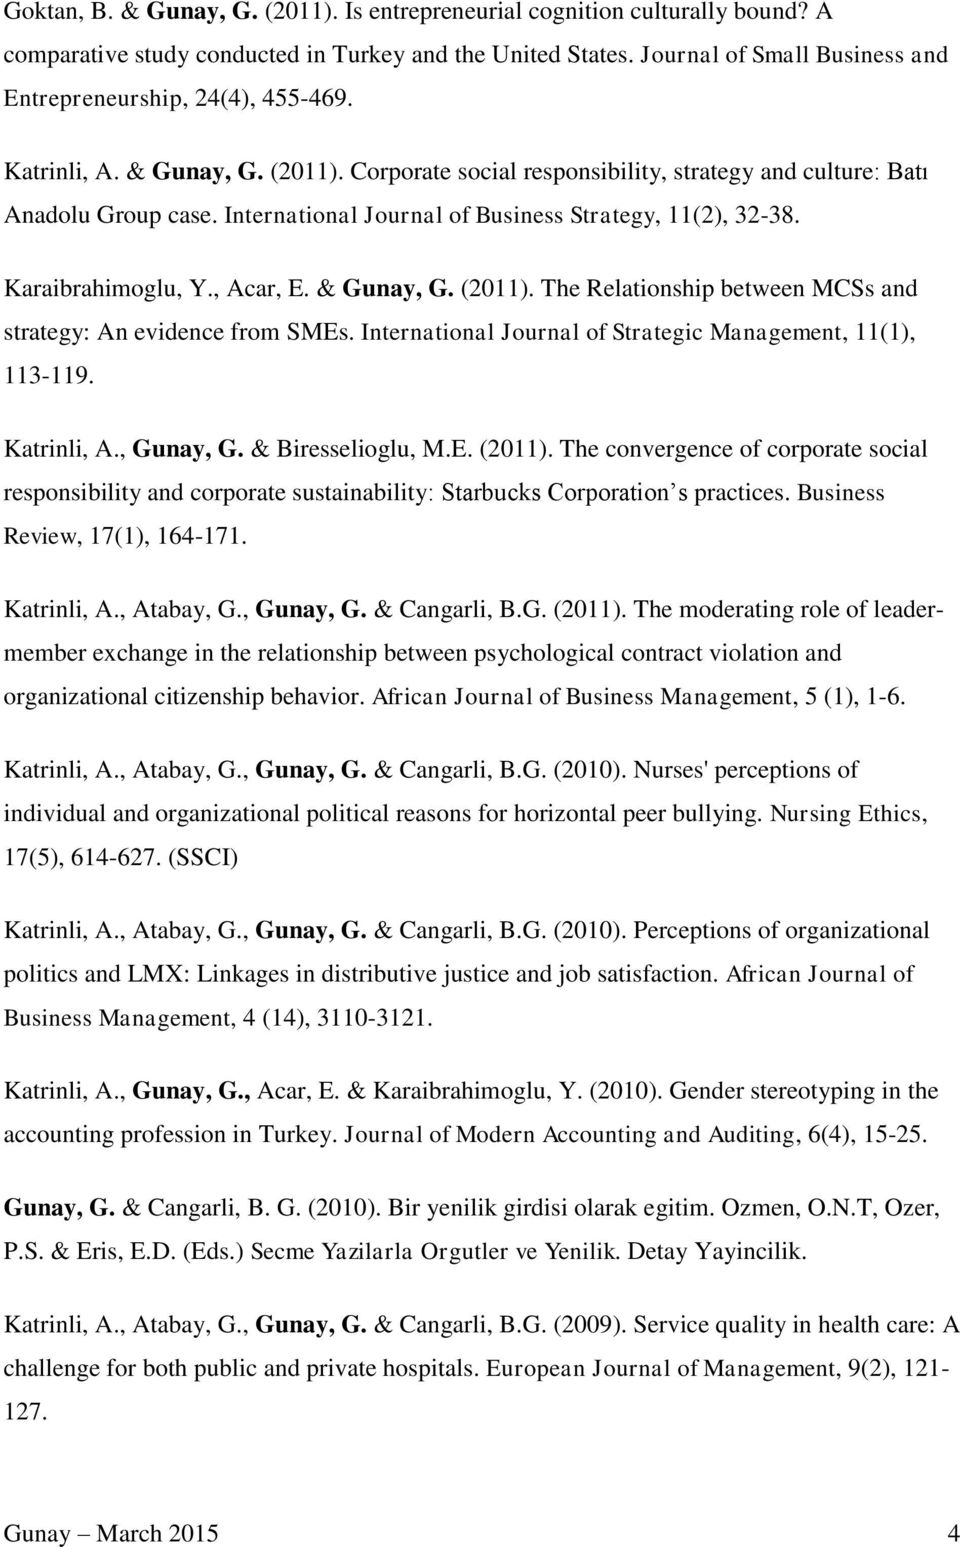 International Journal of Business Strategy, 11(2), 32-38. Karaibrahimoglu, Y., Acar, E. & Gunay, G. (2011). The Relationship between MCSs and strategy: An evidence from SMEs.